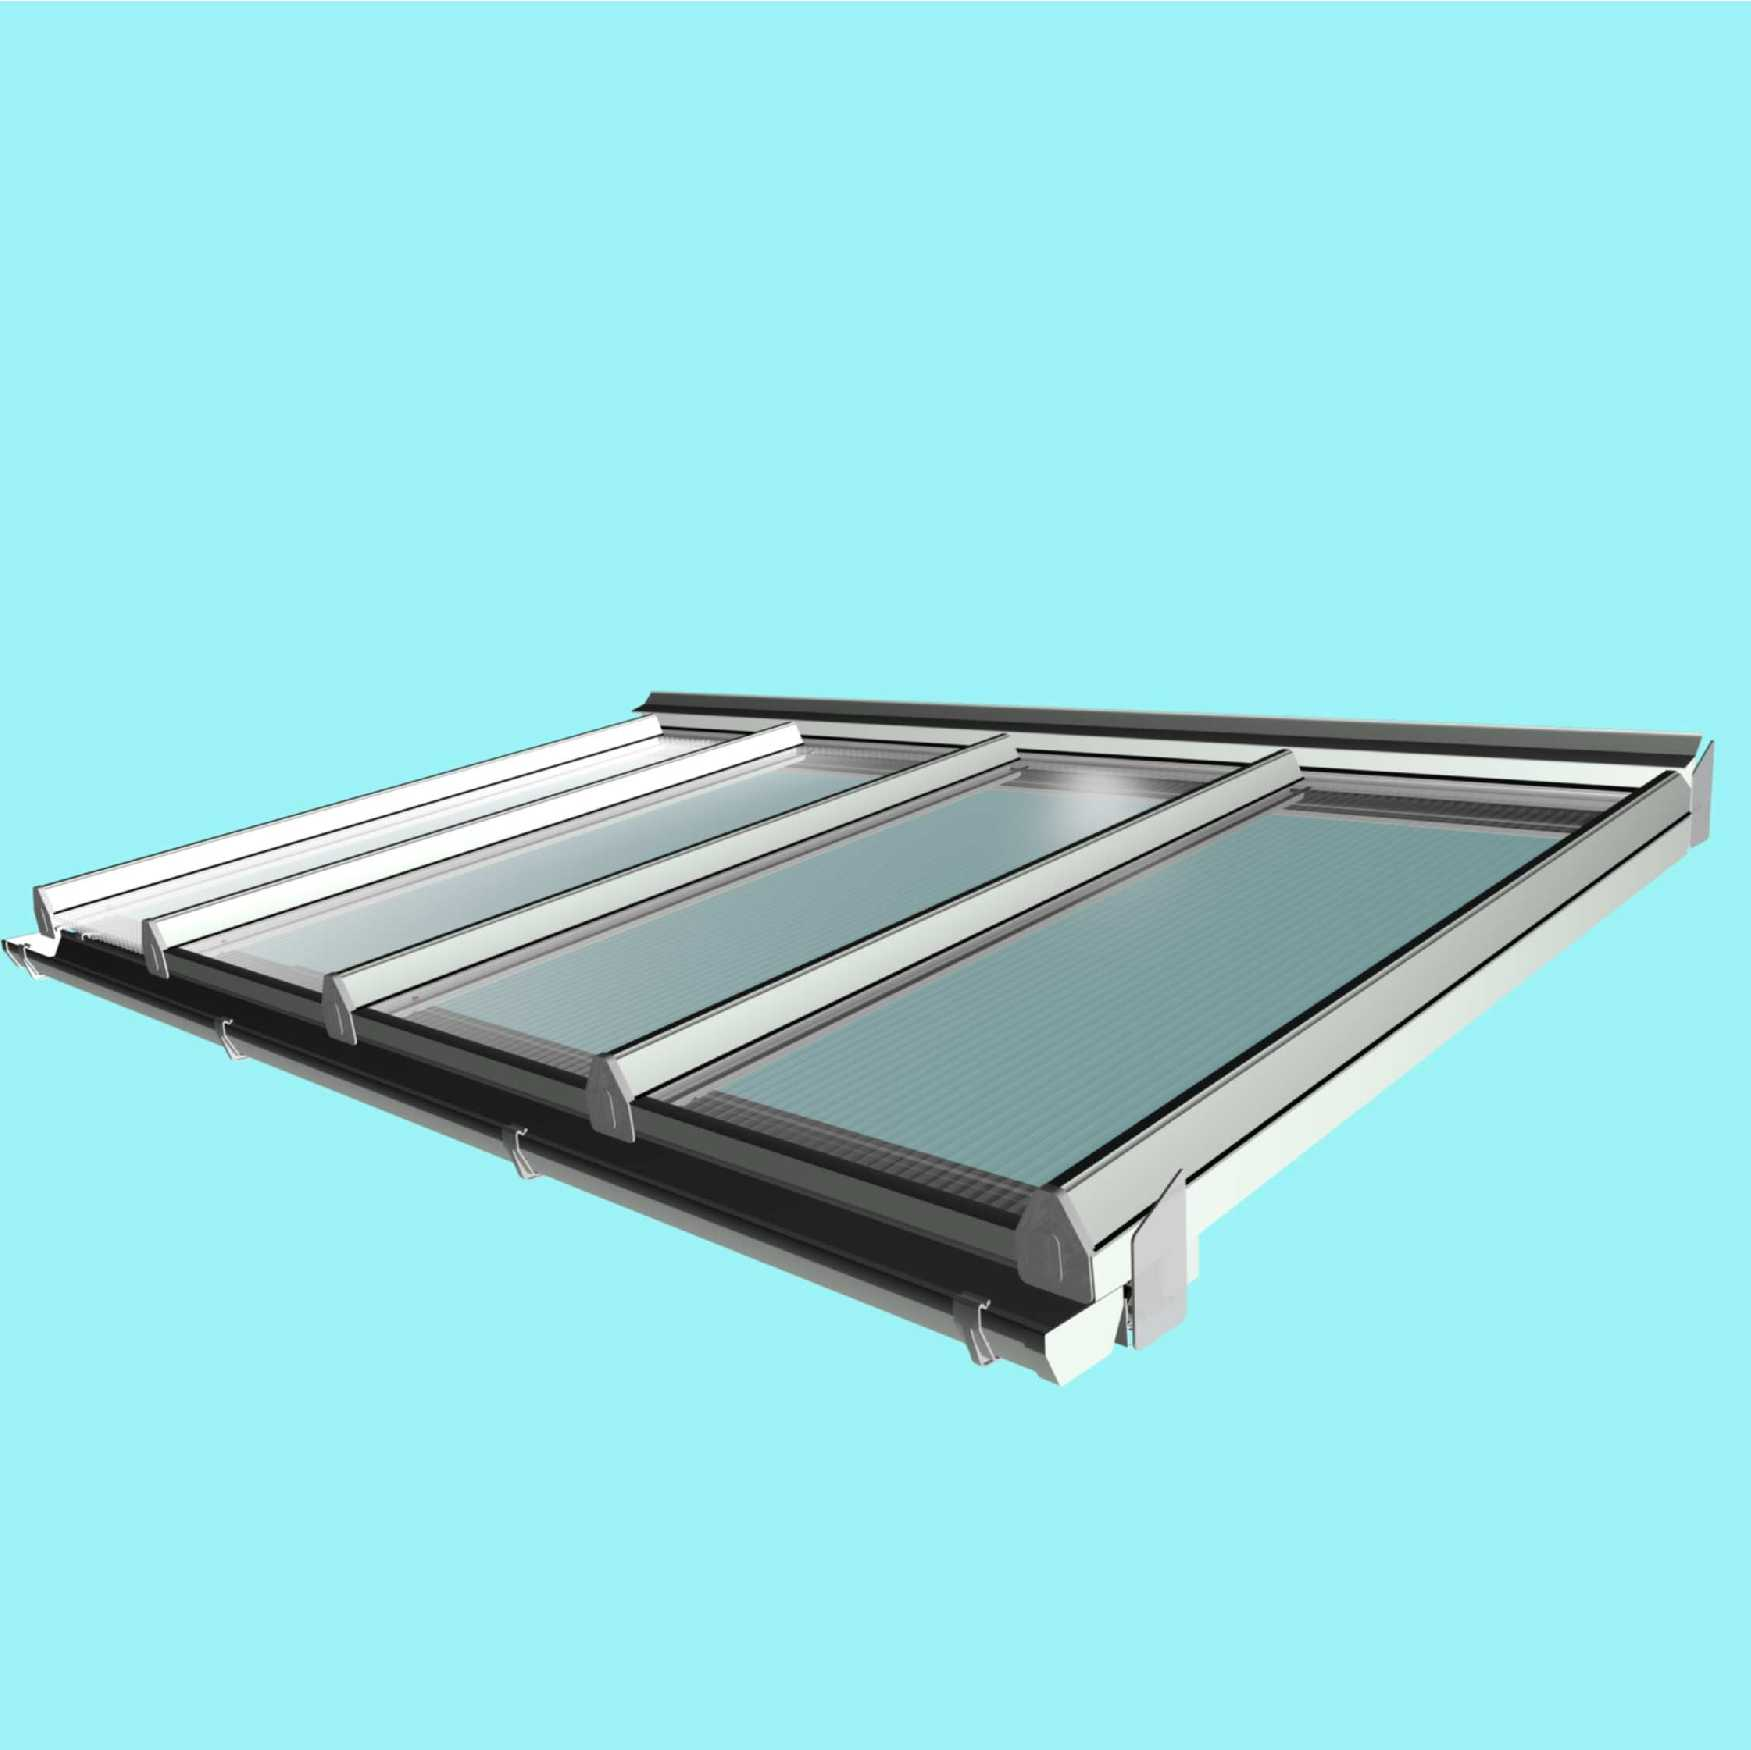 polycarbonate roof kits